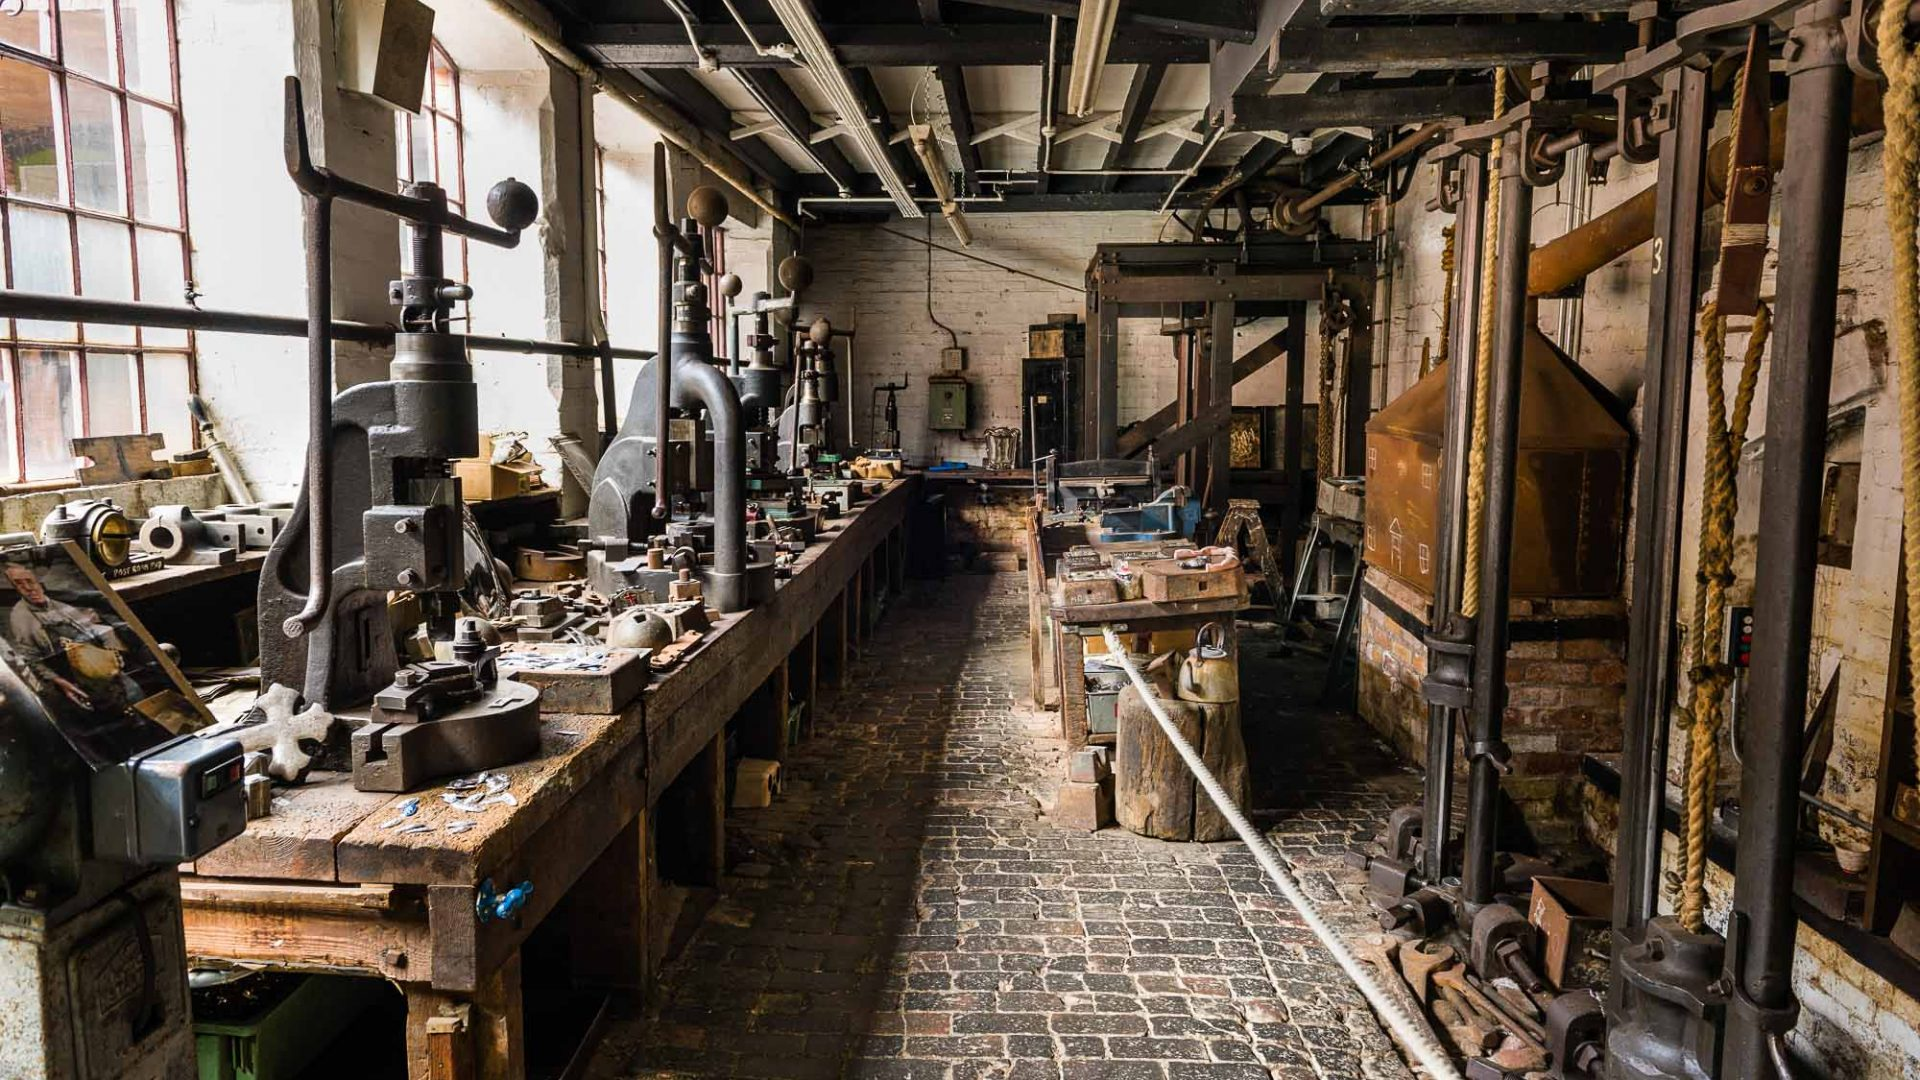 The interior of an old stamp workshop in Birmingham, UK.